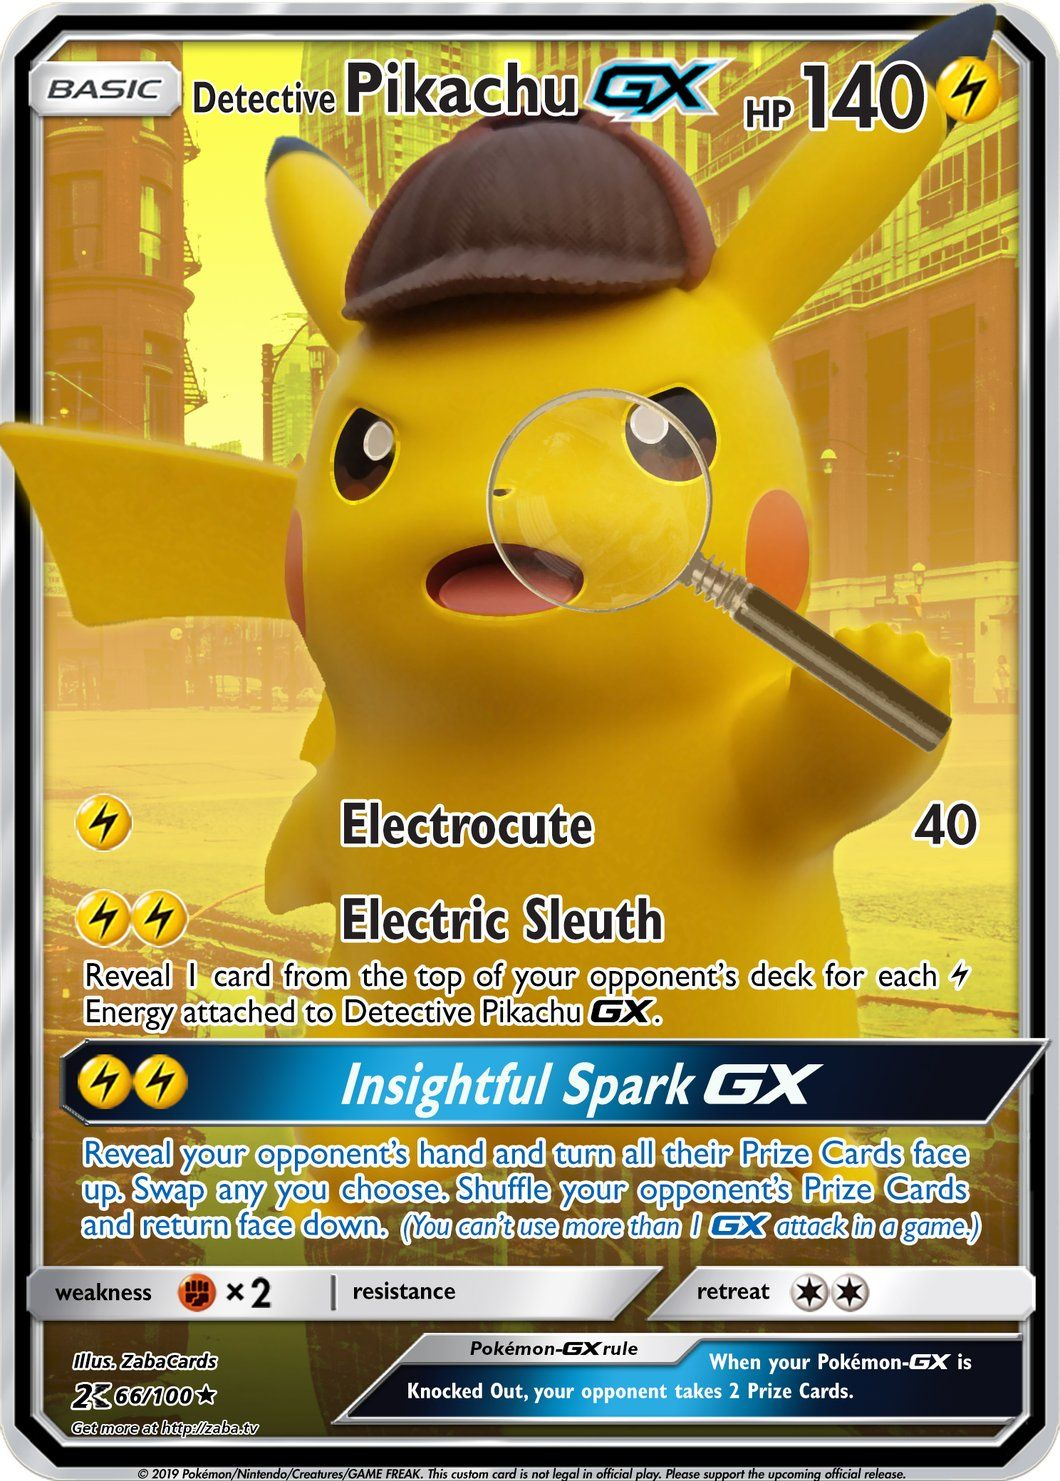 carte pokemon detective pikachu Detective Pikachu GX Custom Pokemon Card (With images) | Pikachu